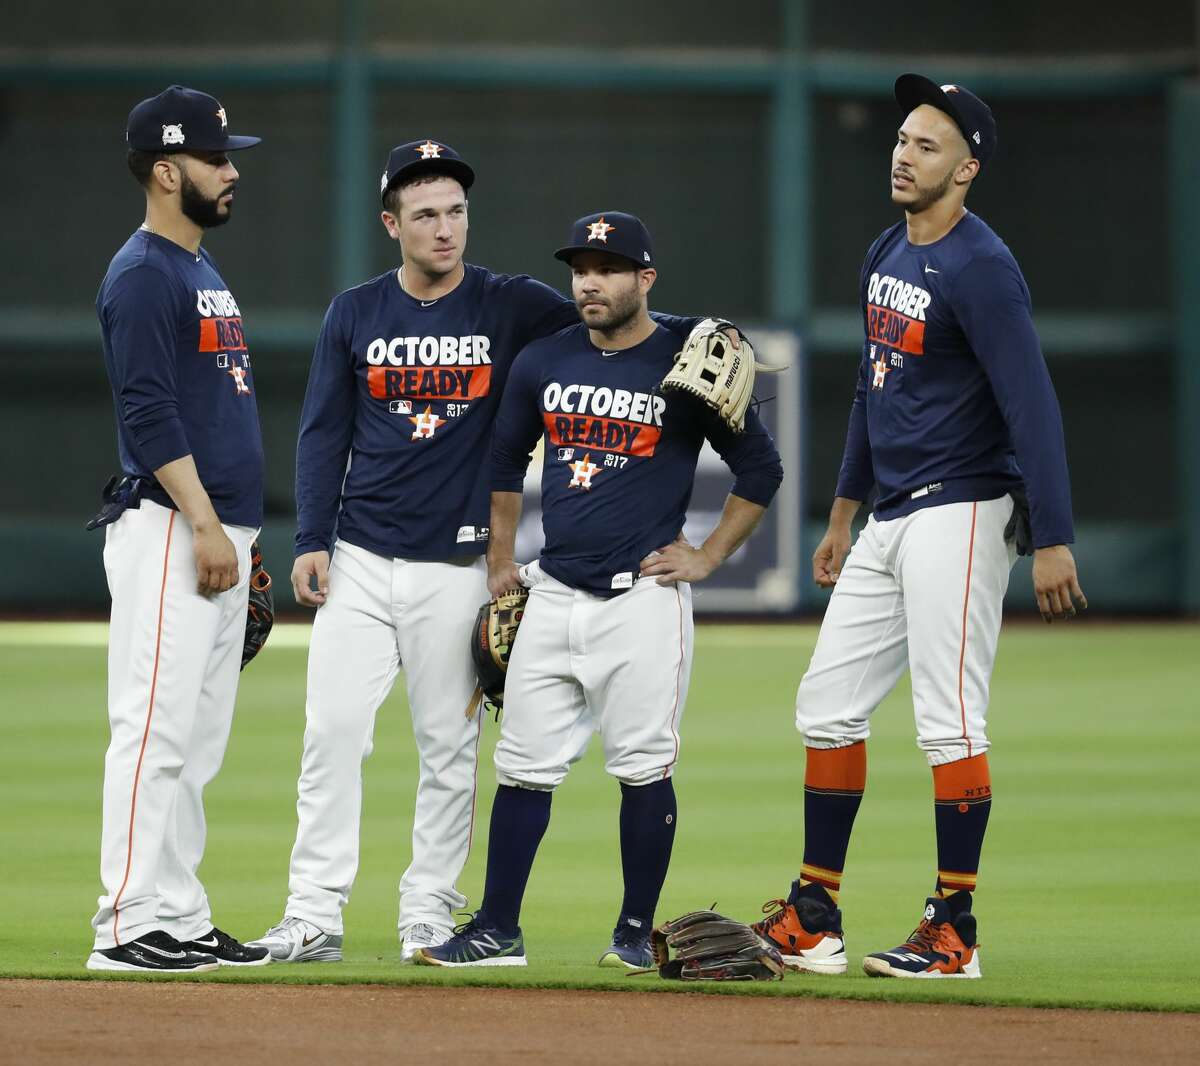 Houston Astros Marwin Gonzalez, Alex Bregman, Jose Altuve, and Carlos Correa during batting practice at Minute Maid Park, Wednesday, Oct. 4, 2017, in Houston, as they prepare to take on the Boston Red Sox in the ALDS playoffs. ( Karen Warren / Houston Chronicle )